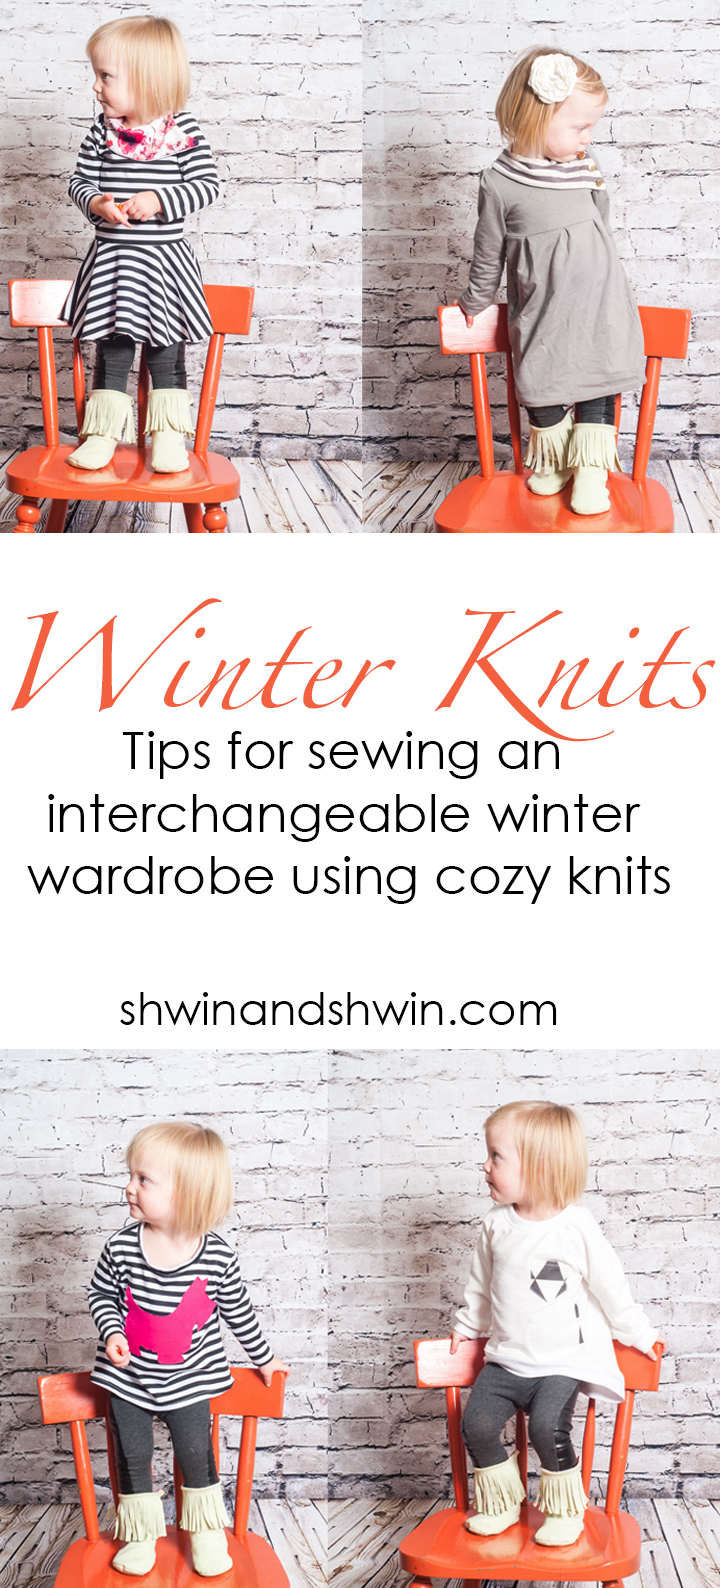 Winter knits || Tips for sewing an interchangeable winter wardrobe using cozy knits || Shwin&Shwin